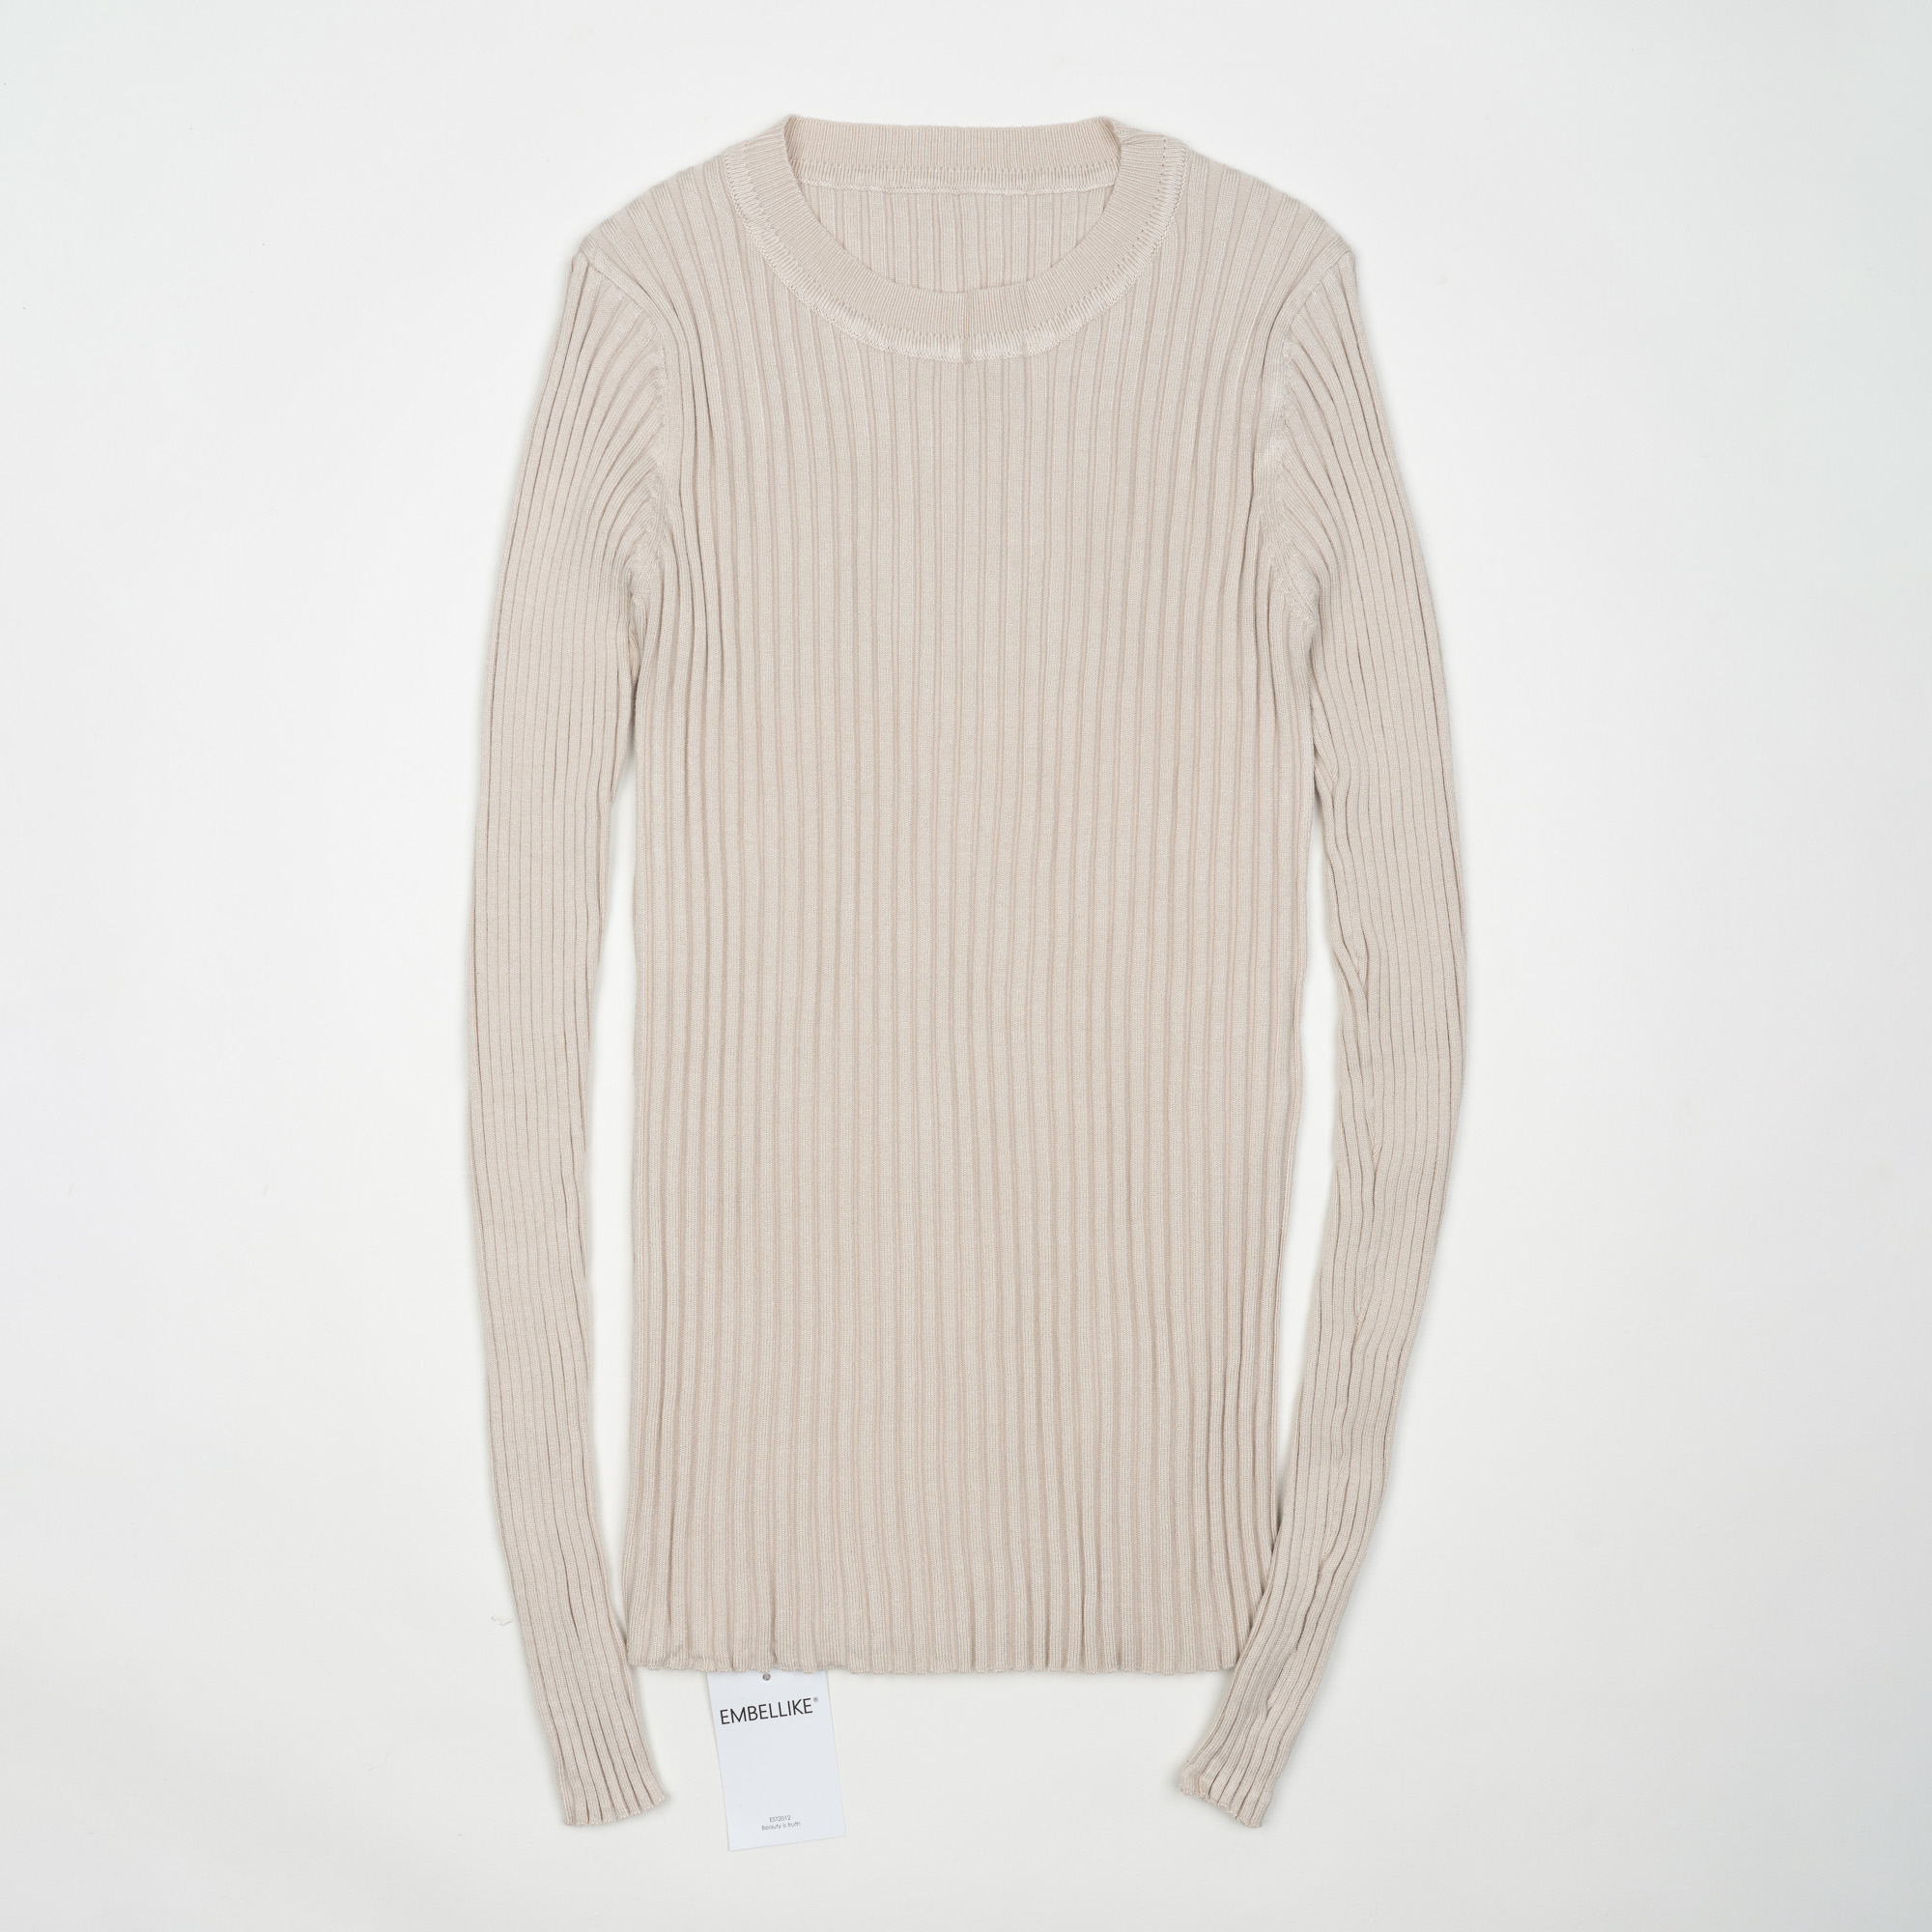 Women Sweater Pullover Basic Ribbed Sweaters Cotton Tops Knitted Solid Crew Neck With Thumb Hole 28